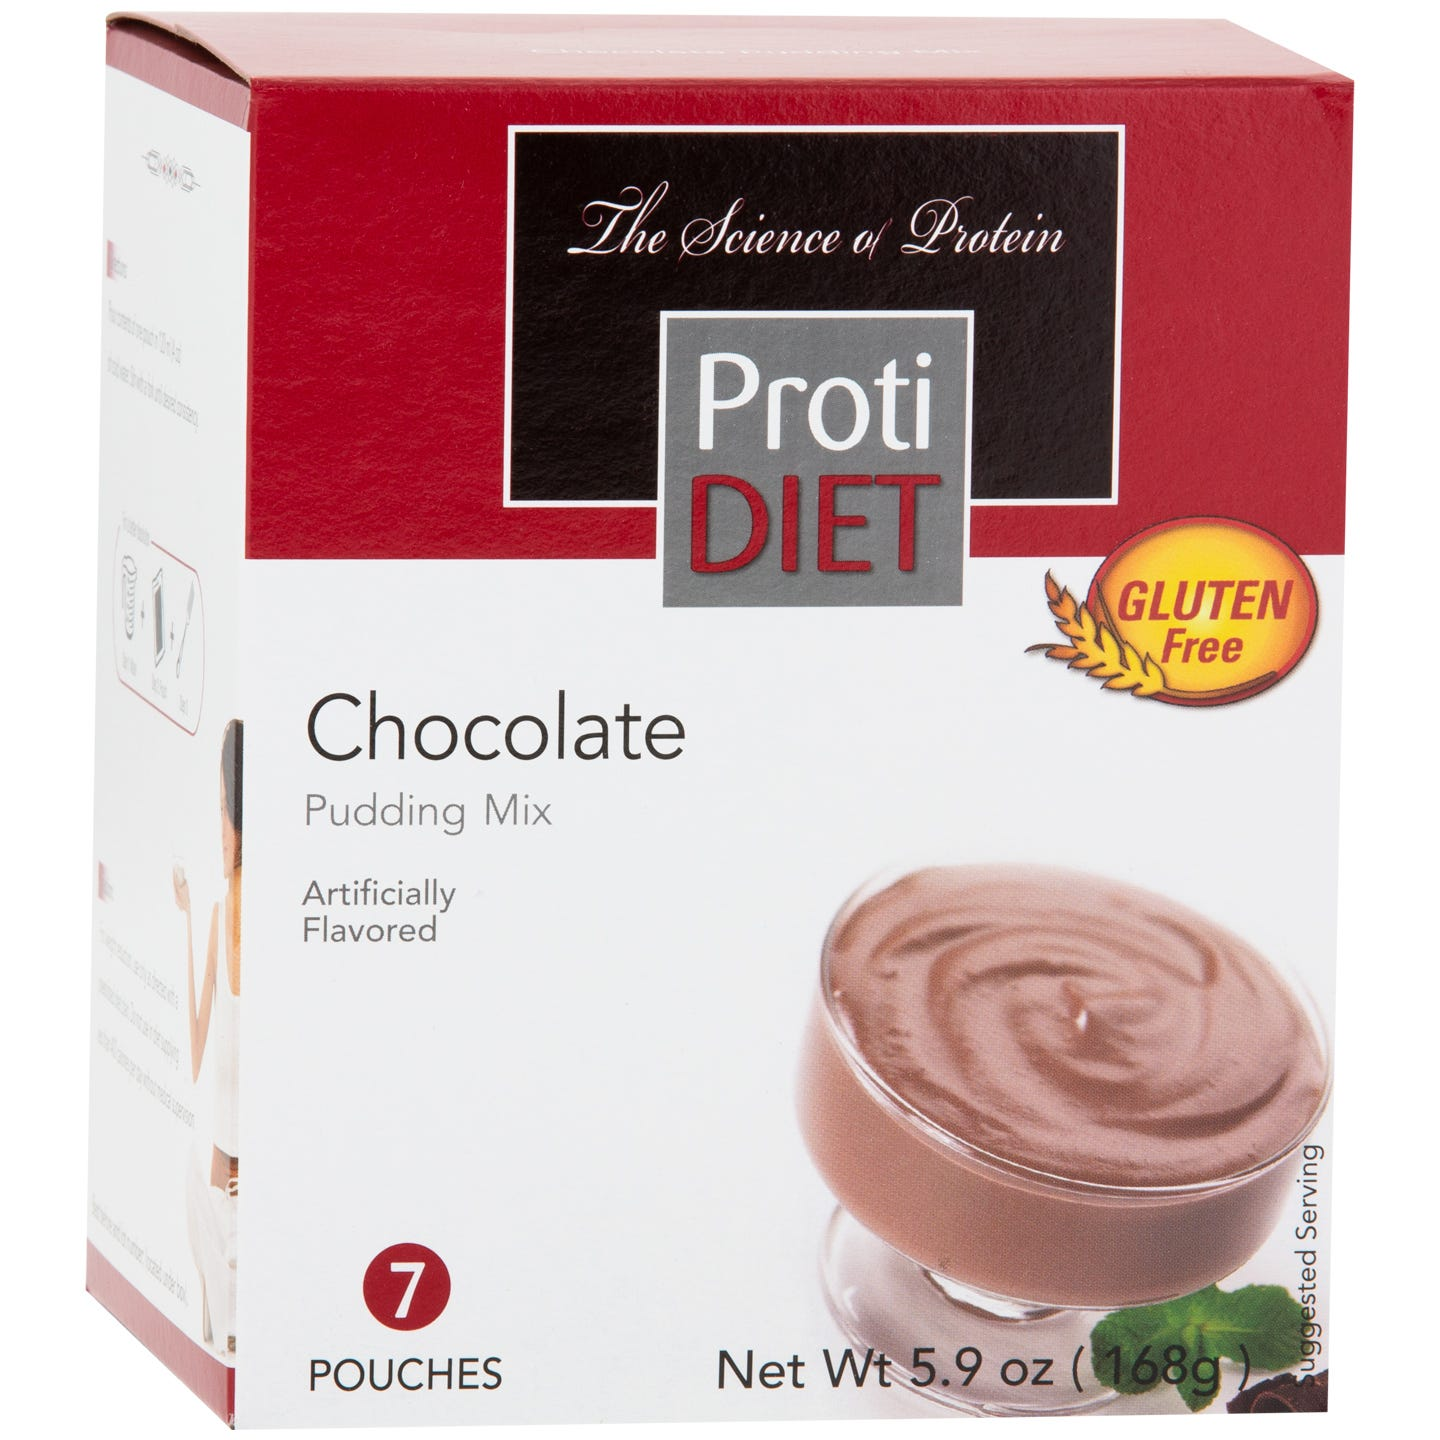 Protein Instant Pudding Chocolate (7 Ct) - ProtiDiet